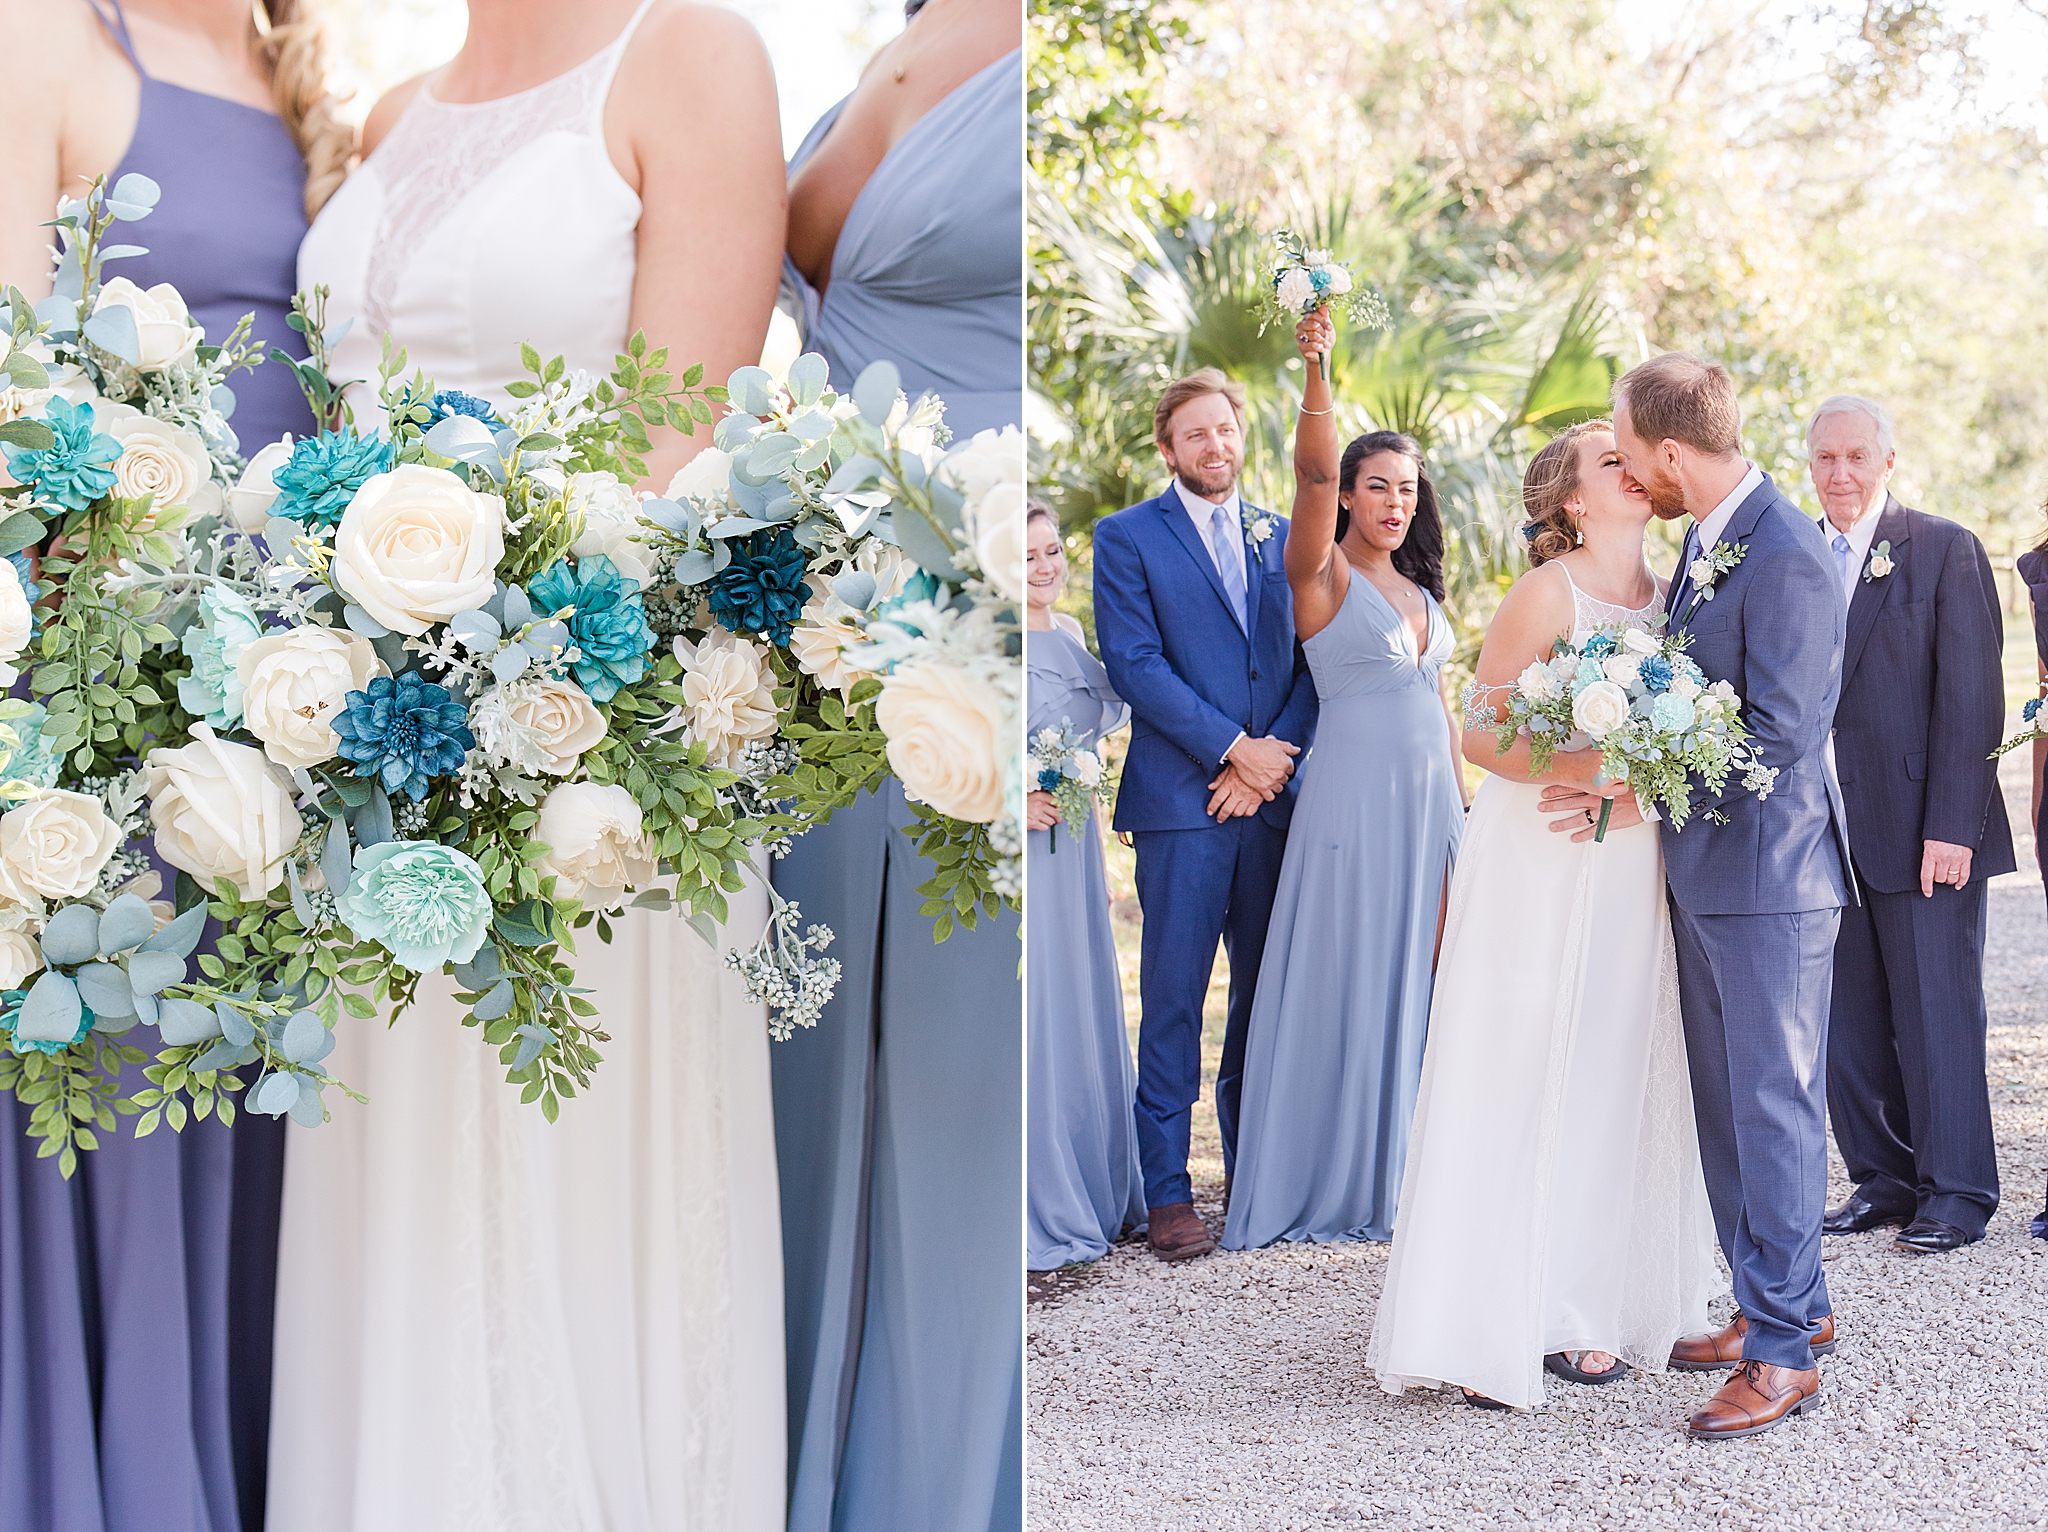 bridal party poses with bride and groom